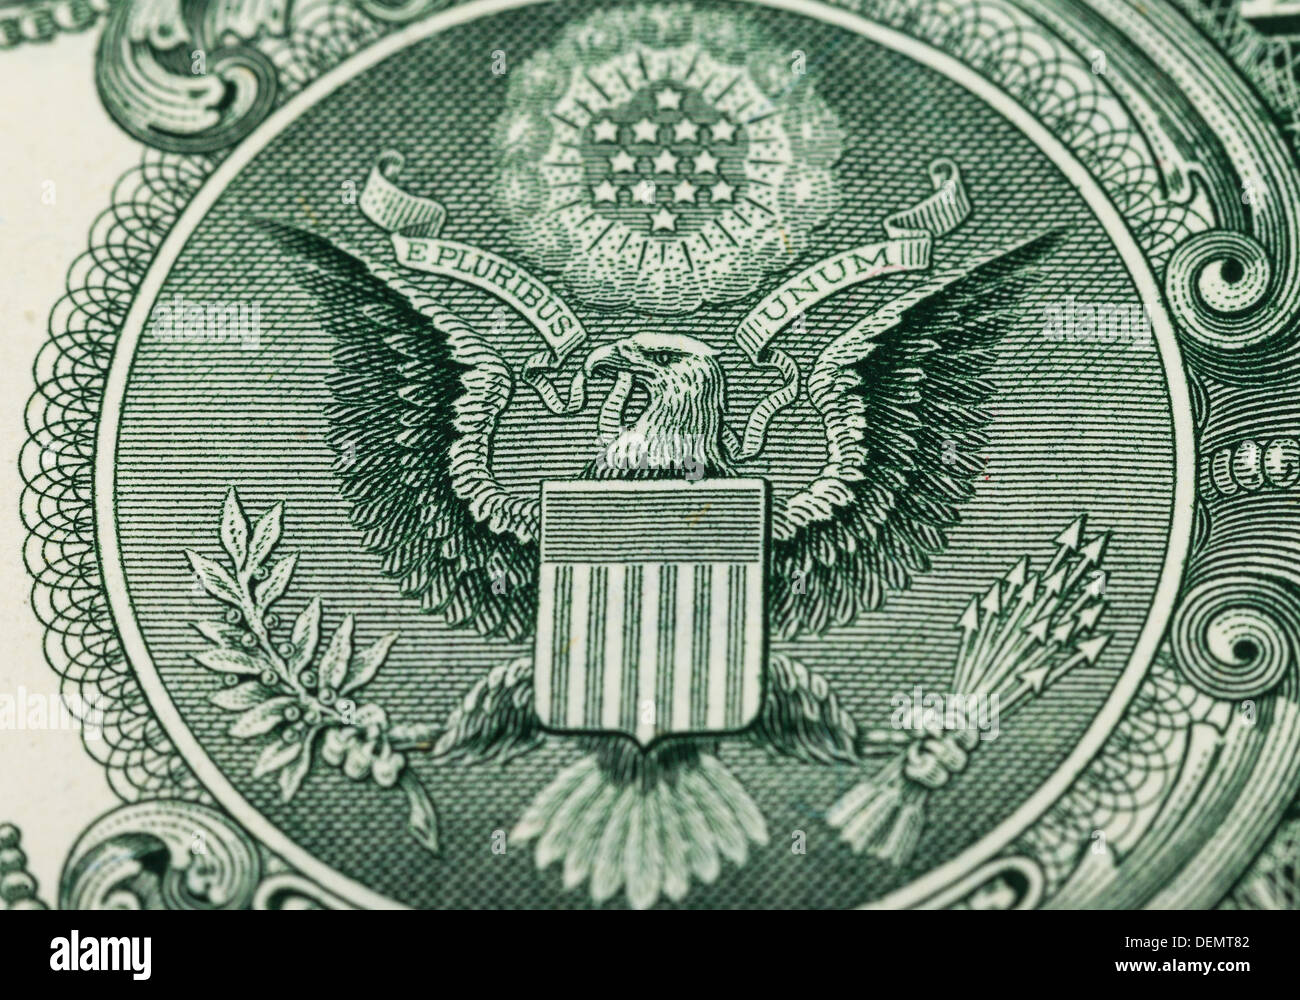 Great Seal of the United States on the reverse of a US Dollar Bill Stock Photo